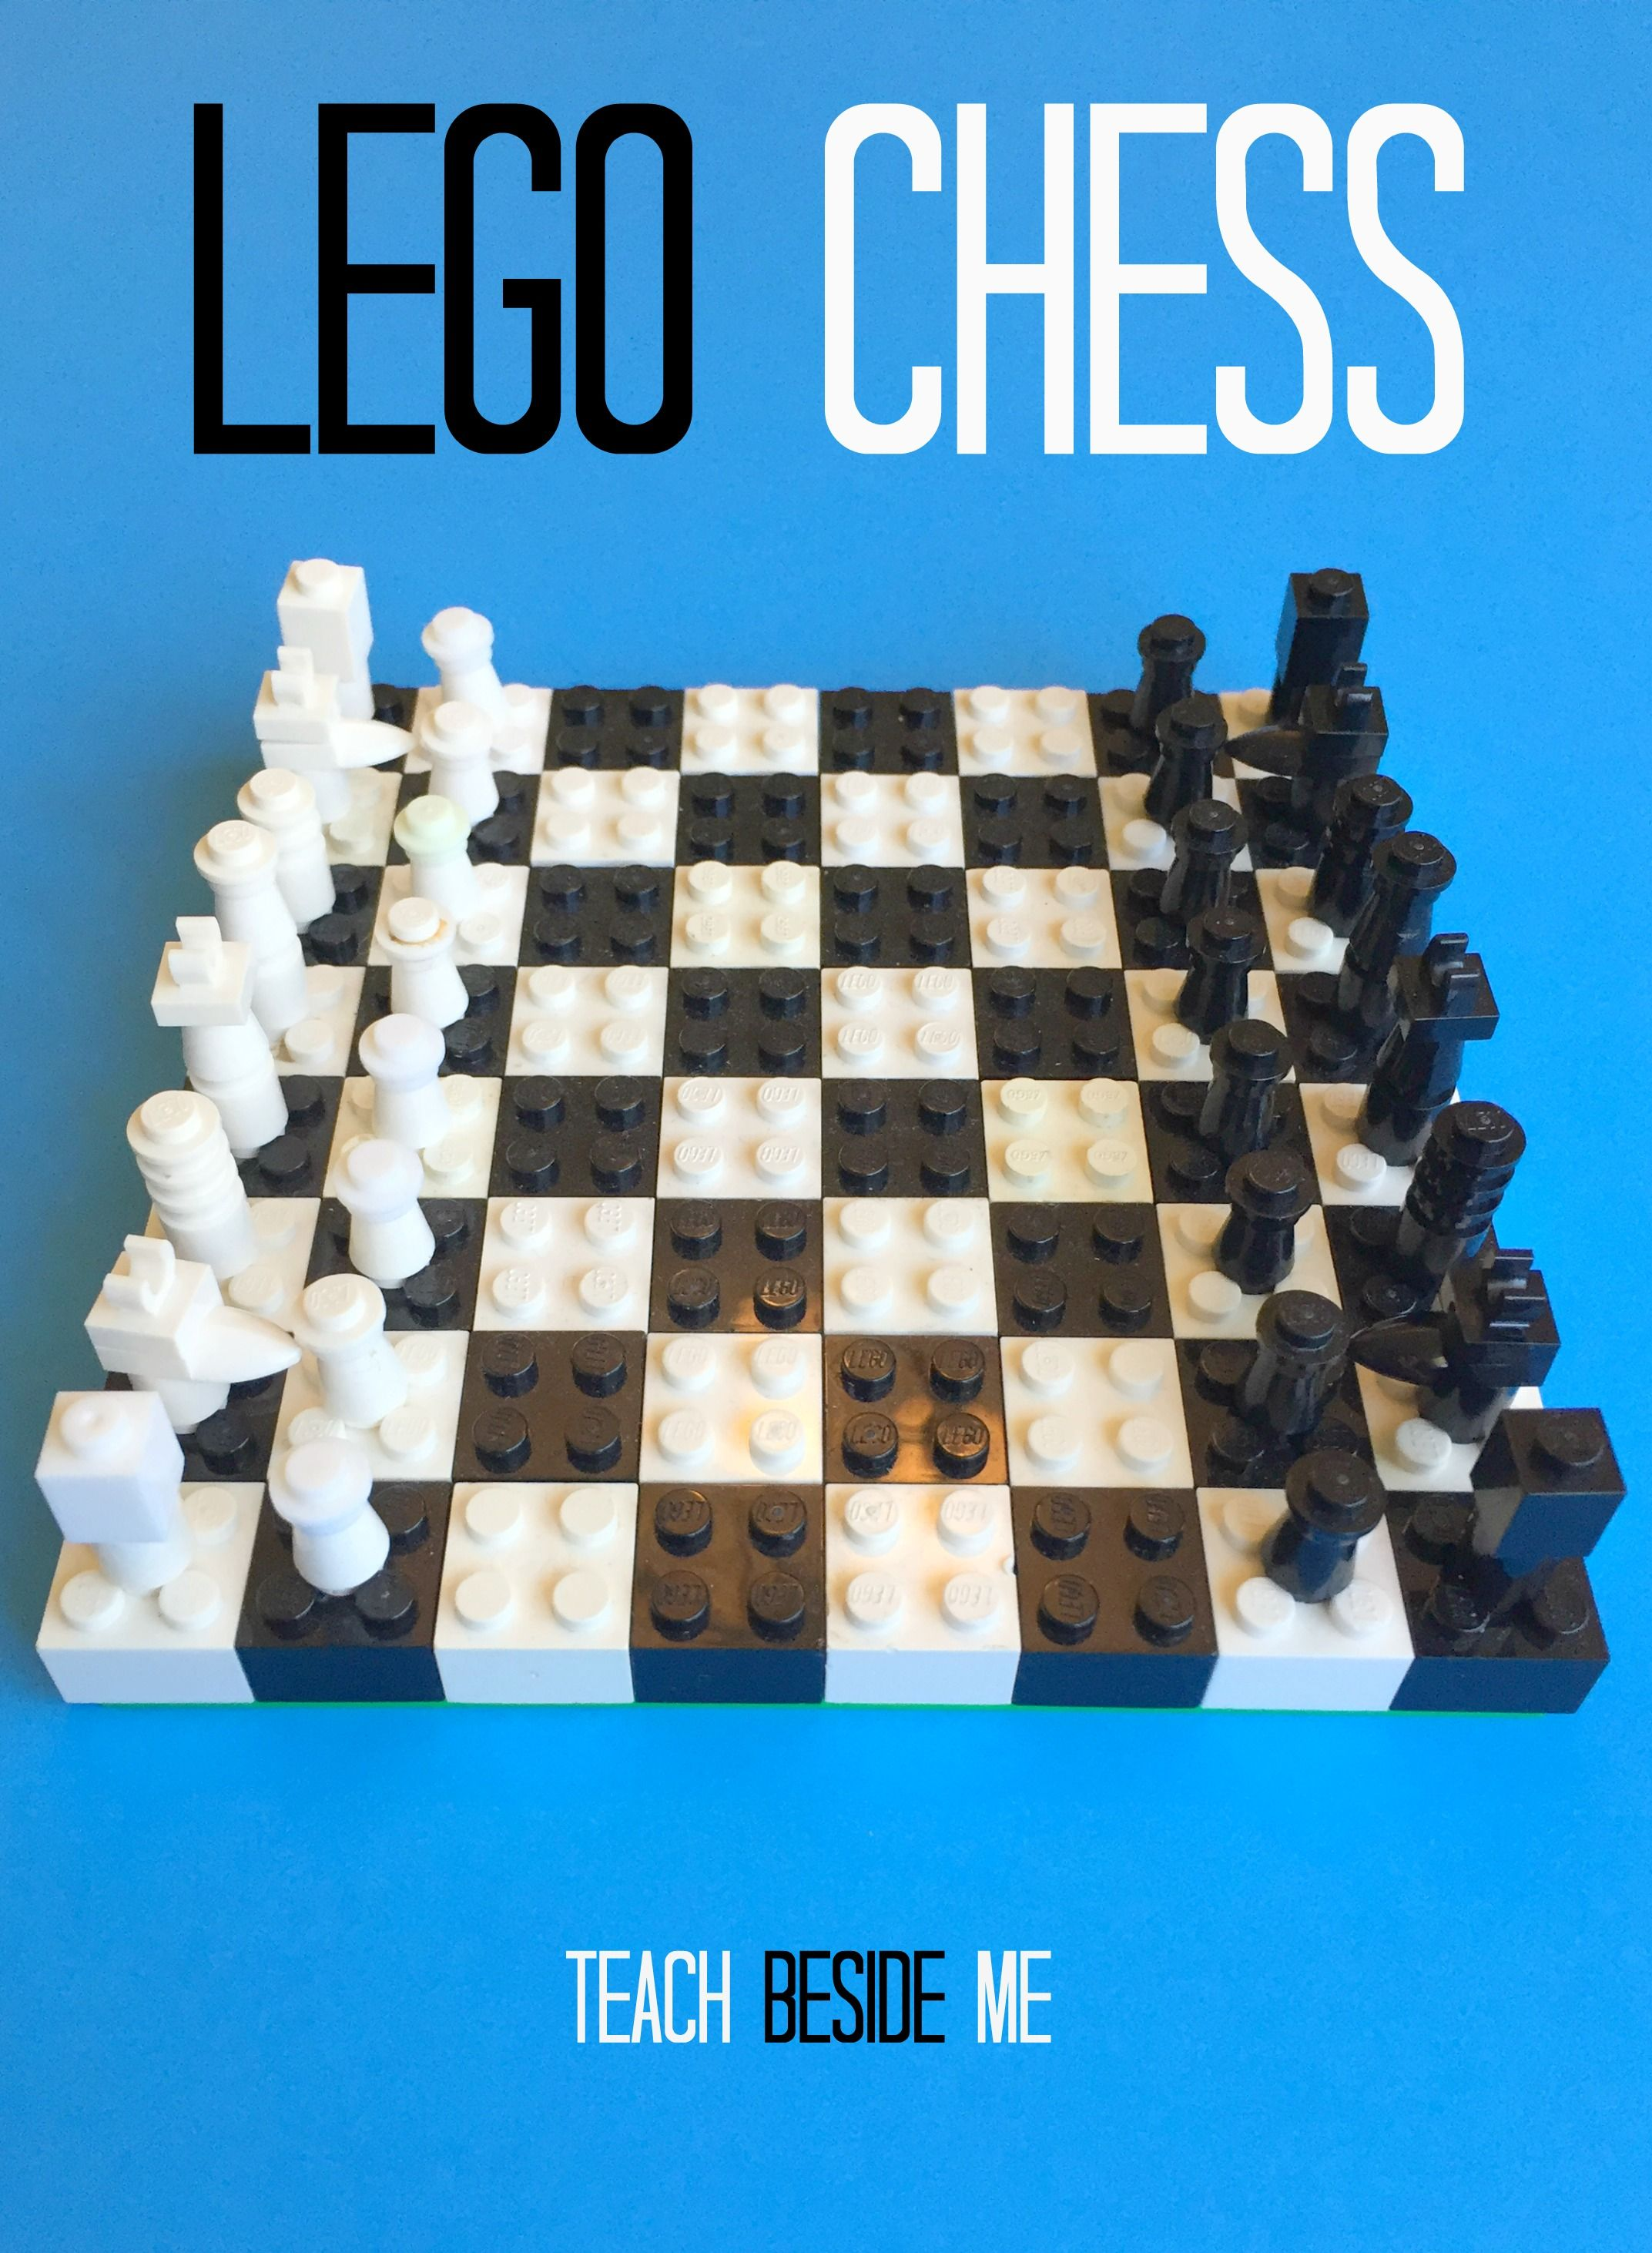 How To Make a Lego Chess Set Lego chess, Lego activities